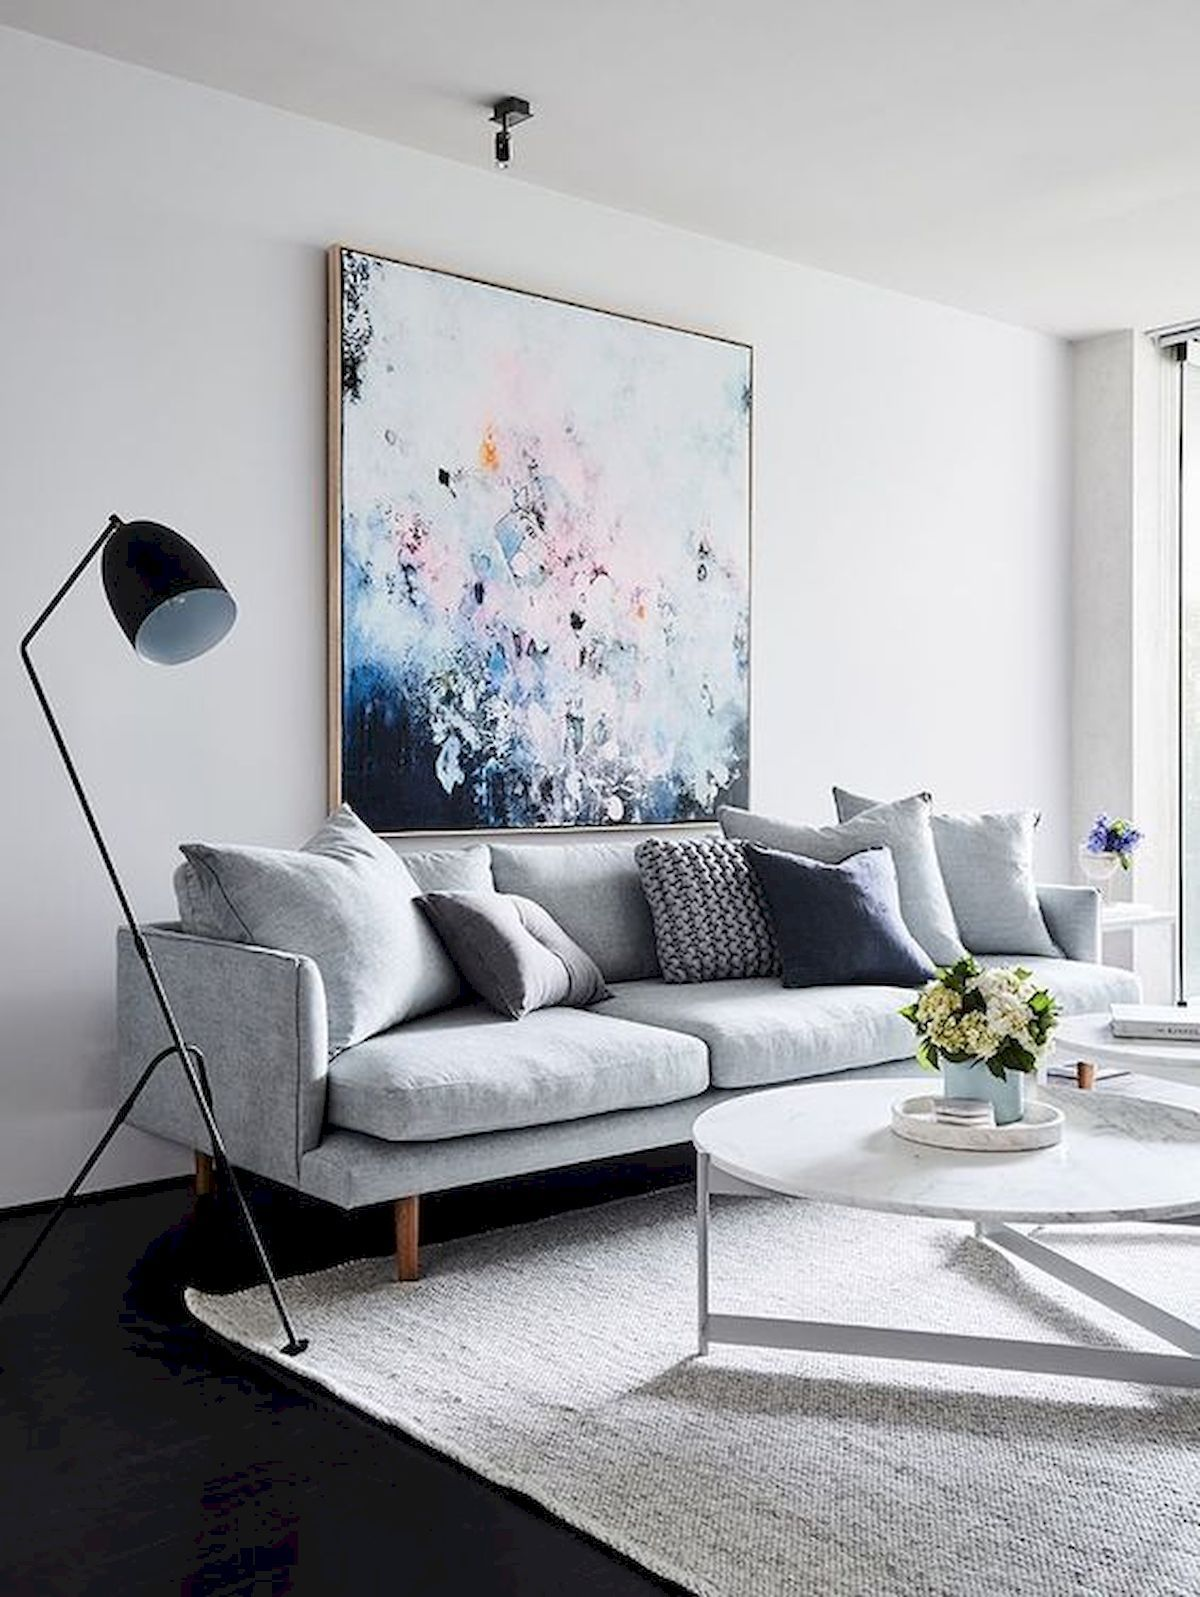 most elegant wall art ideas for living room makeover interior